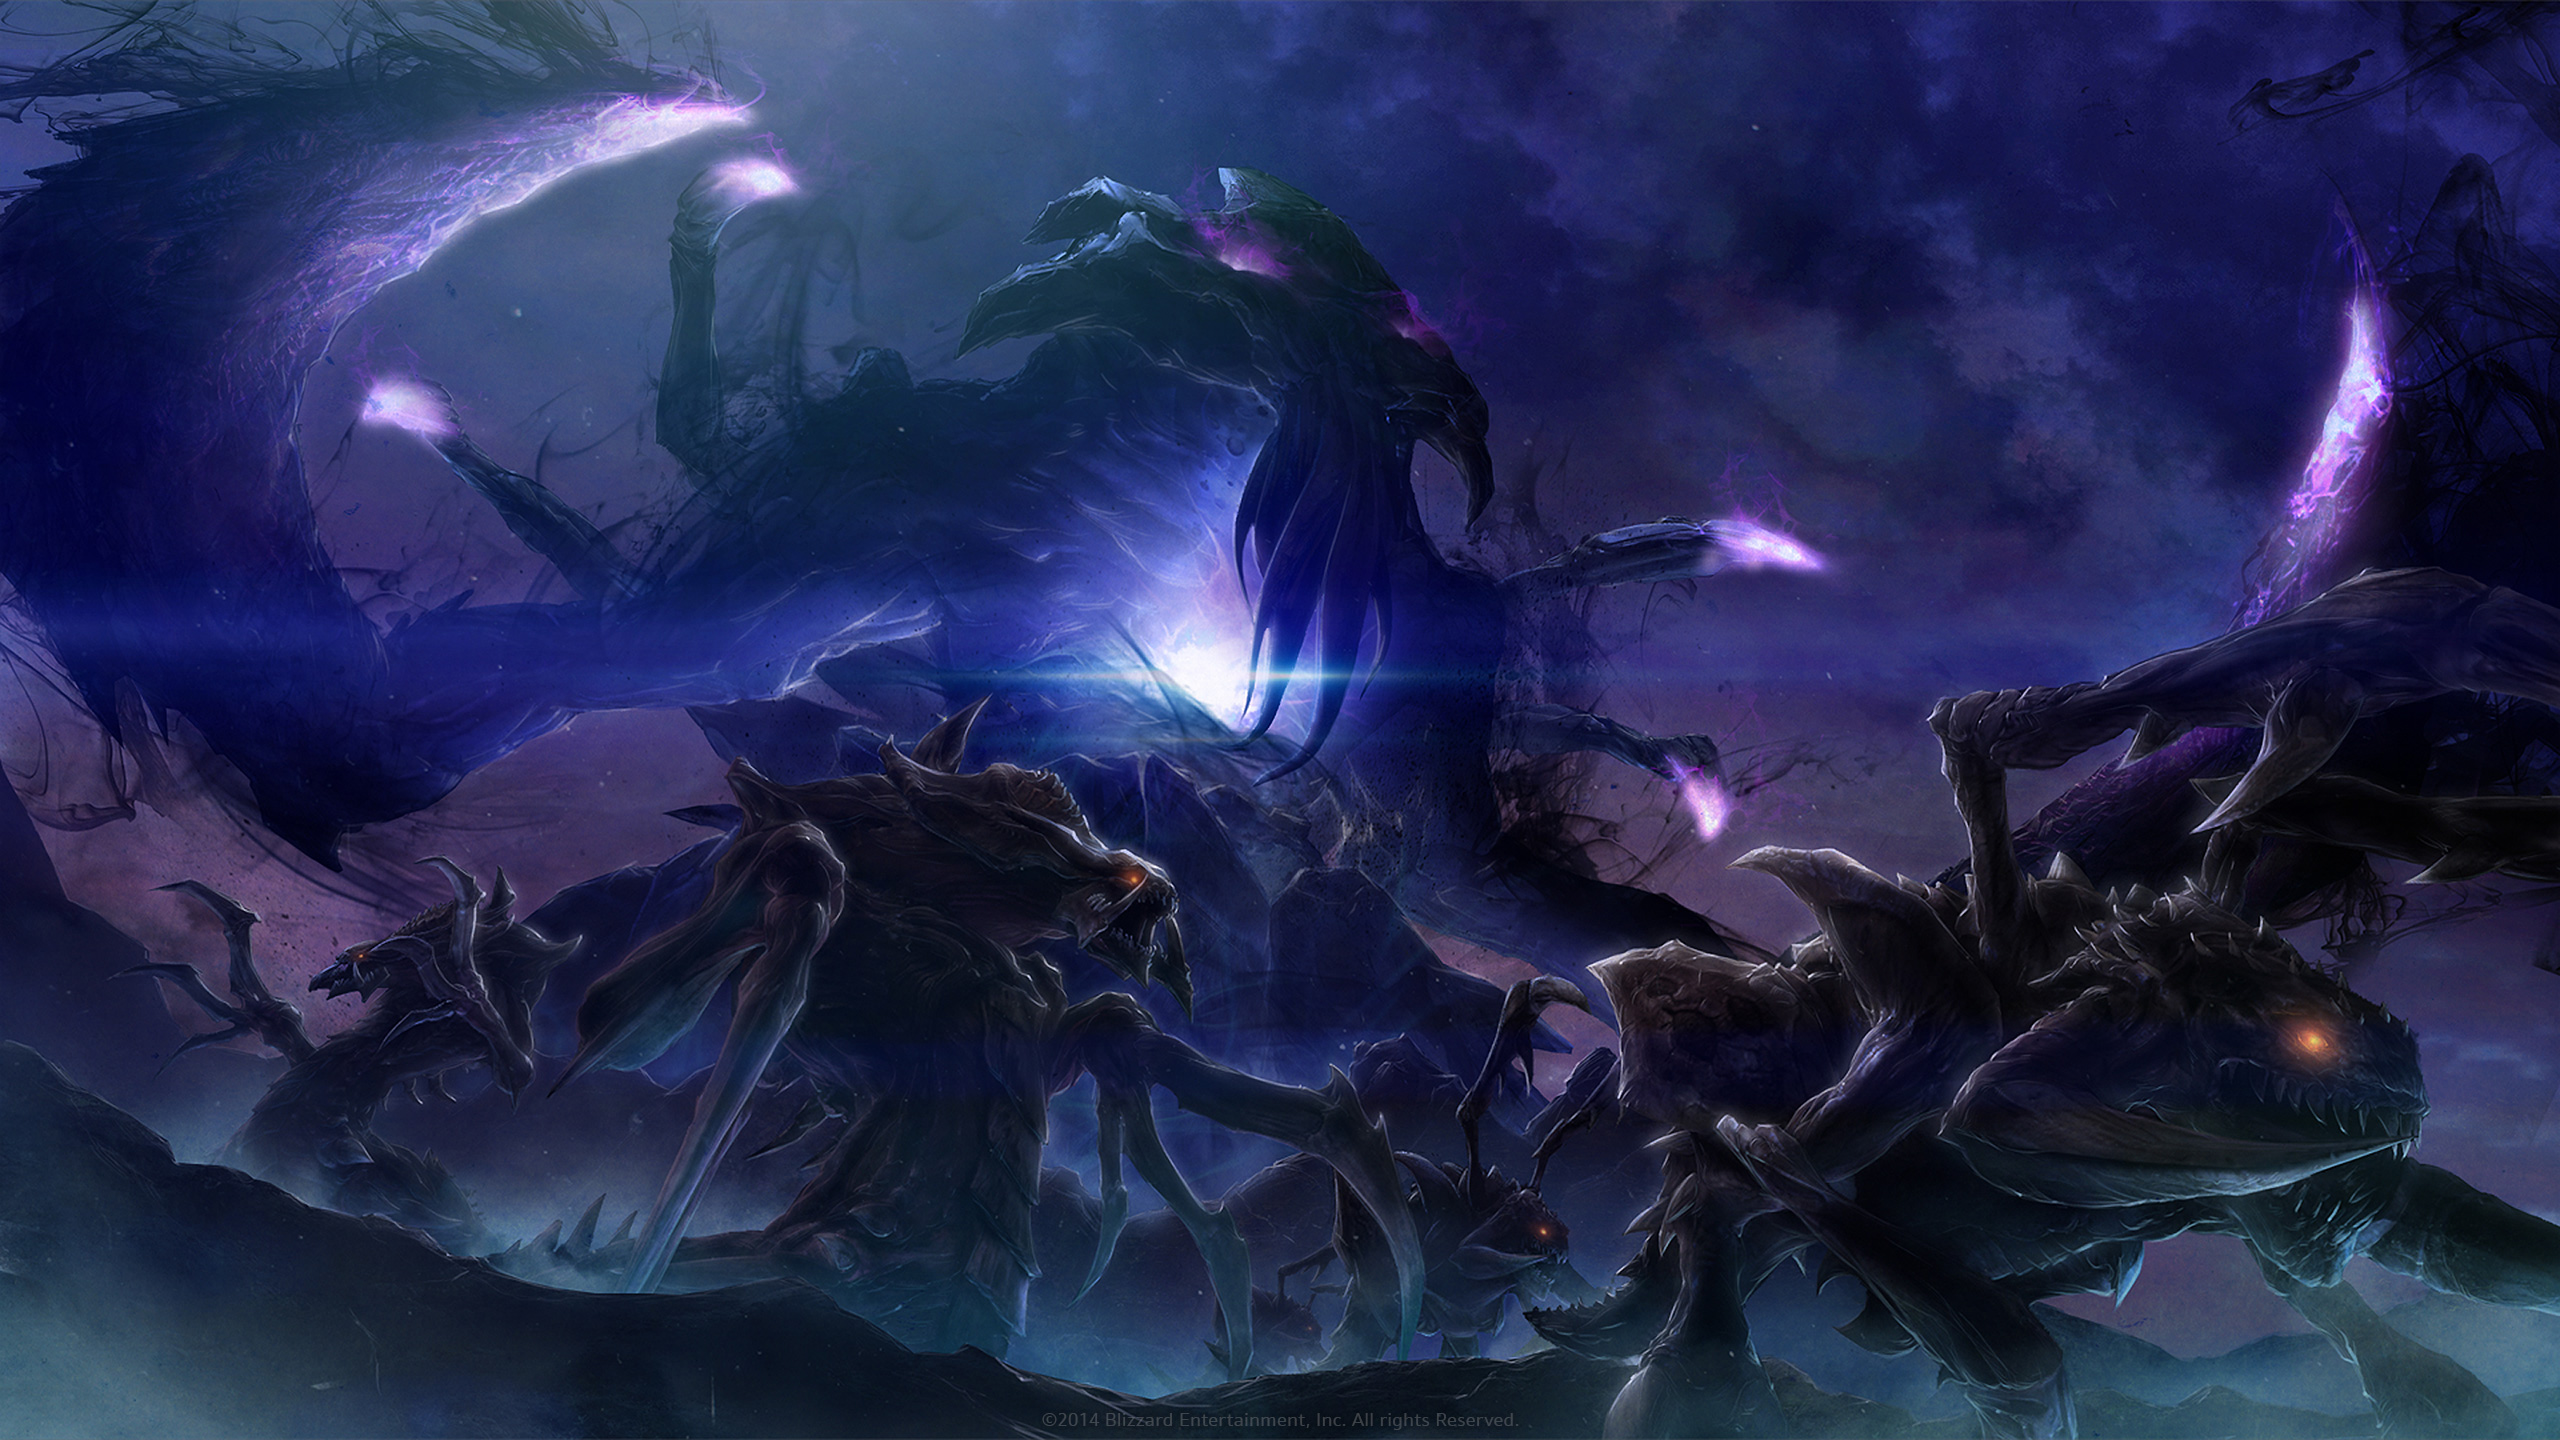 CCC3 noscale - Review: StarCraft II: Legacy of the Void